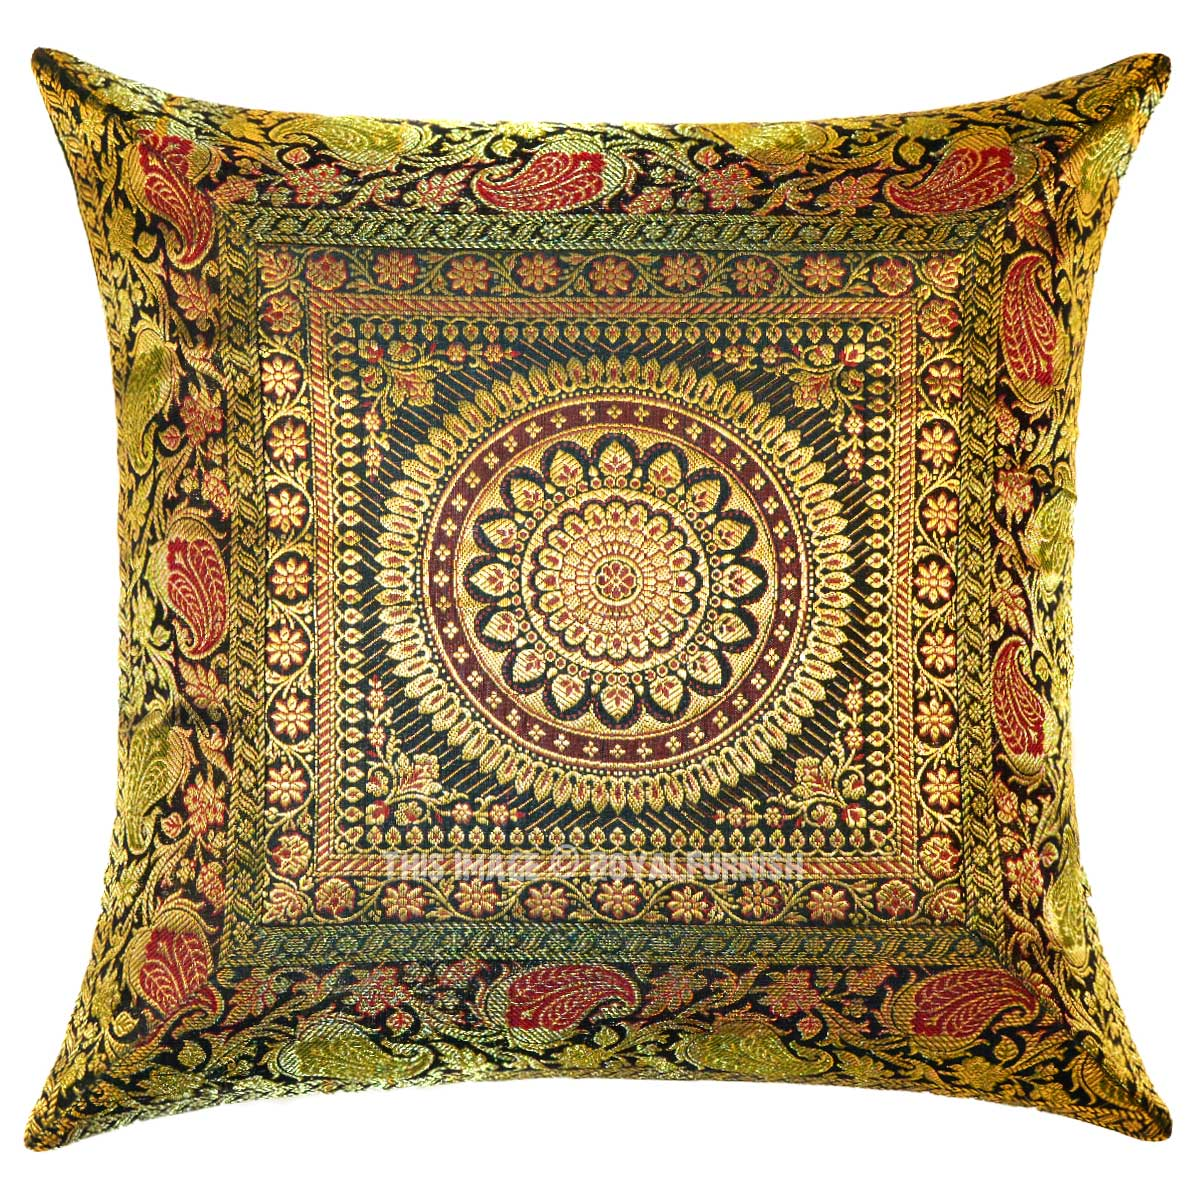 Unique Decorative Accent Pillows : Dark Green Unique Floral Medallion Circle Decorative Silk Square Pillow Cover - RoyalFurnish.com